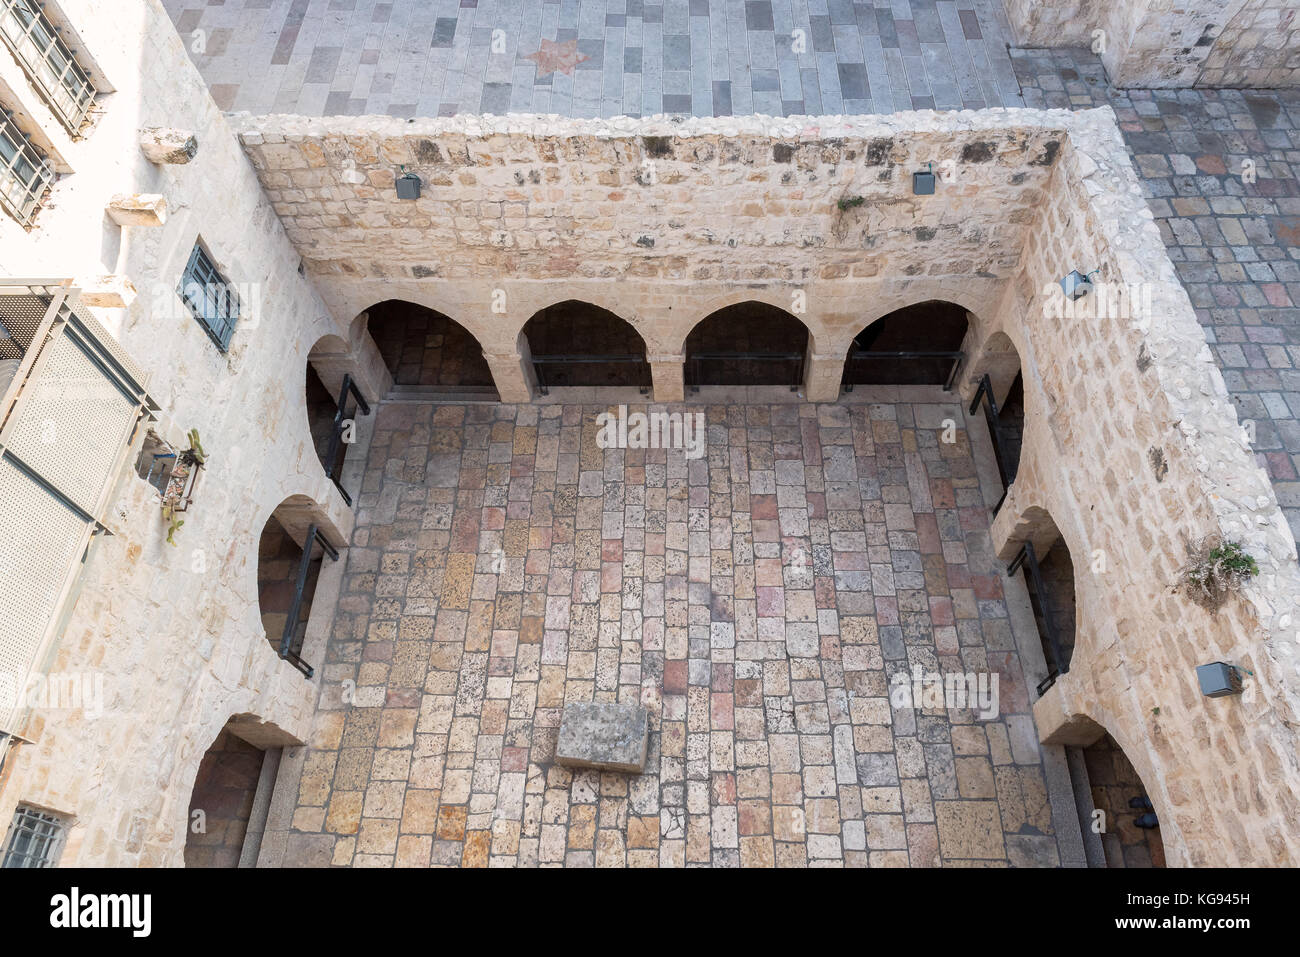 The cobblestones courtyard in Jerusalem Old City, Israel. - Stock Image